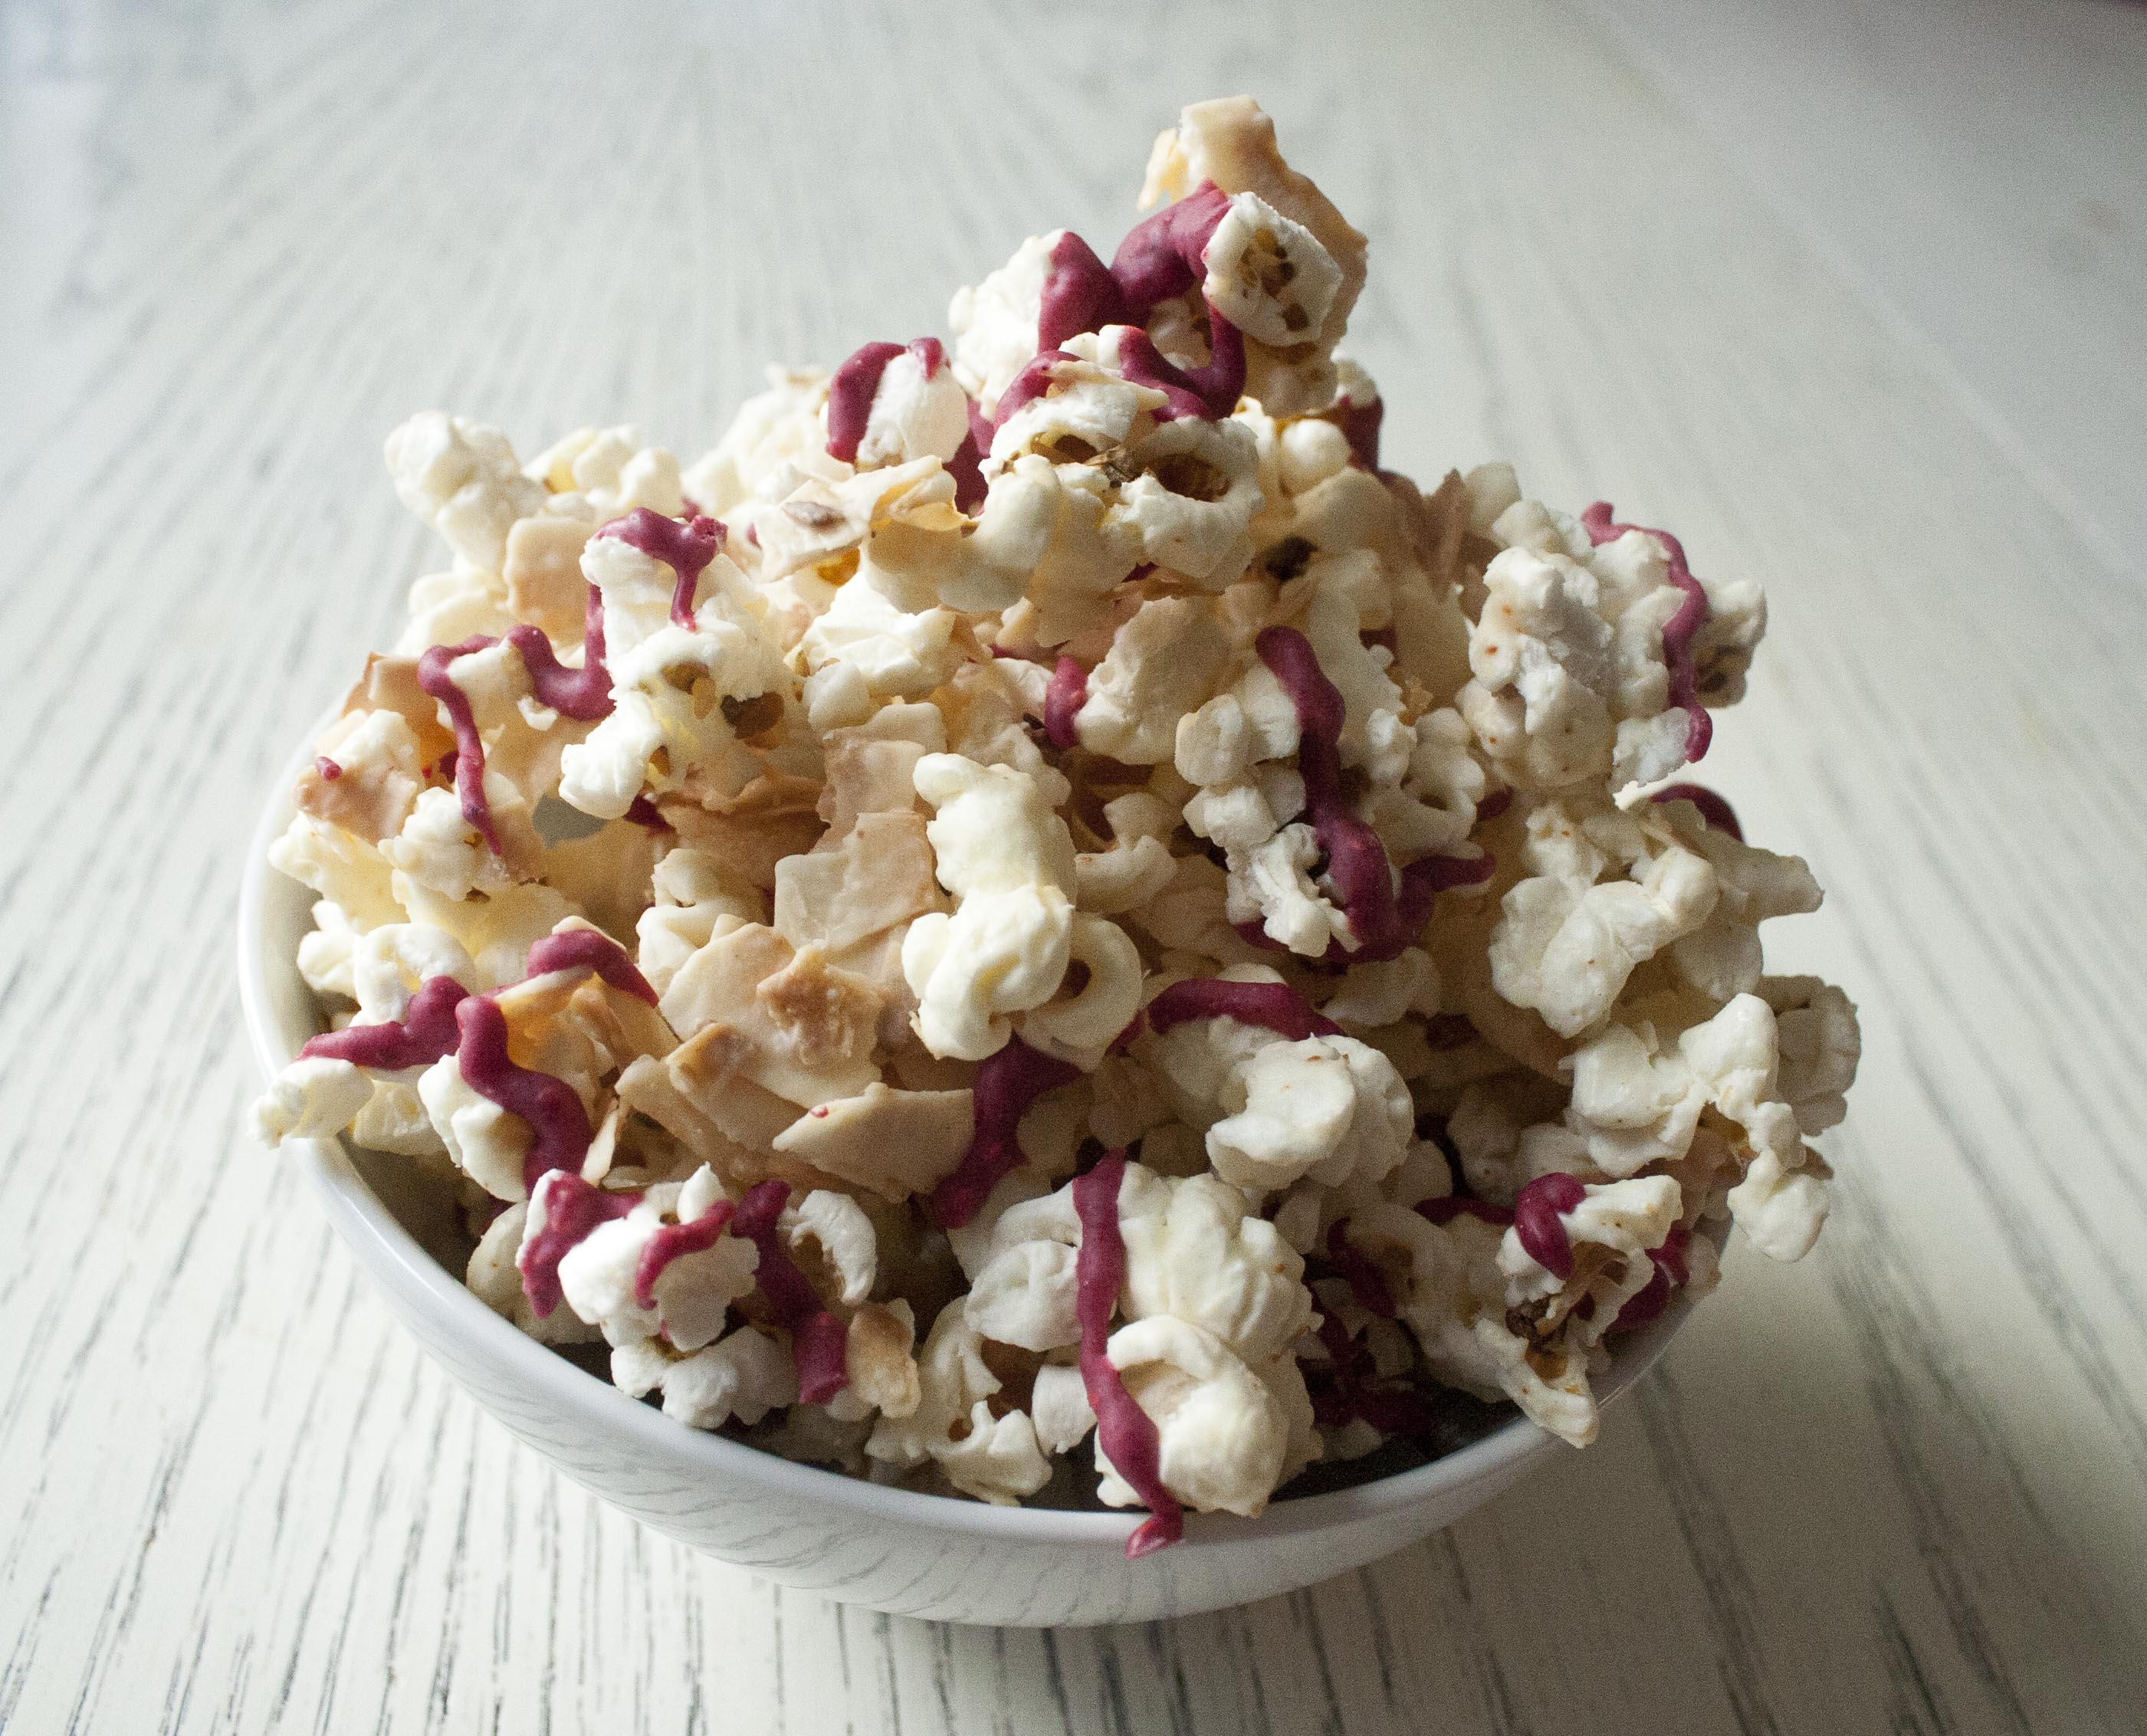 Coconut and Raspberry-Drizzled White Chocolate Popcorn www.lifeaswecookit.com